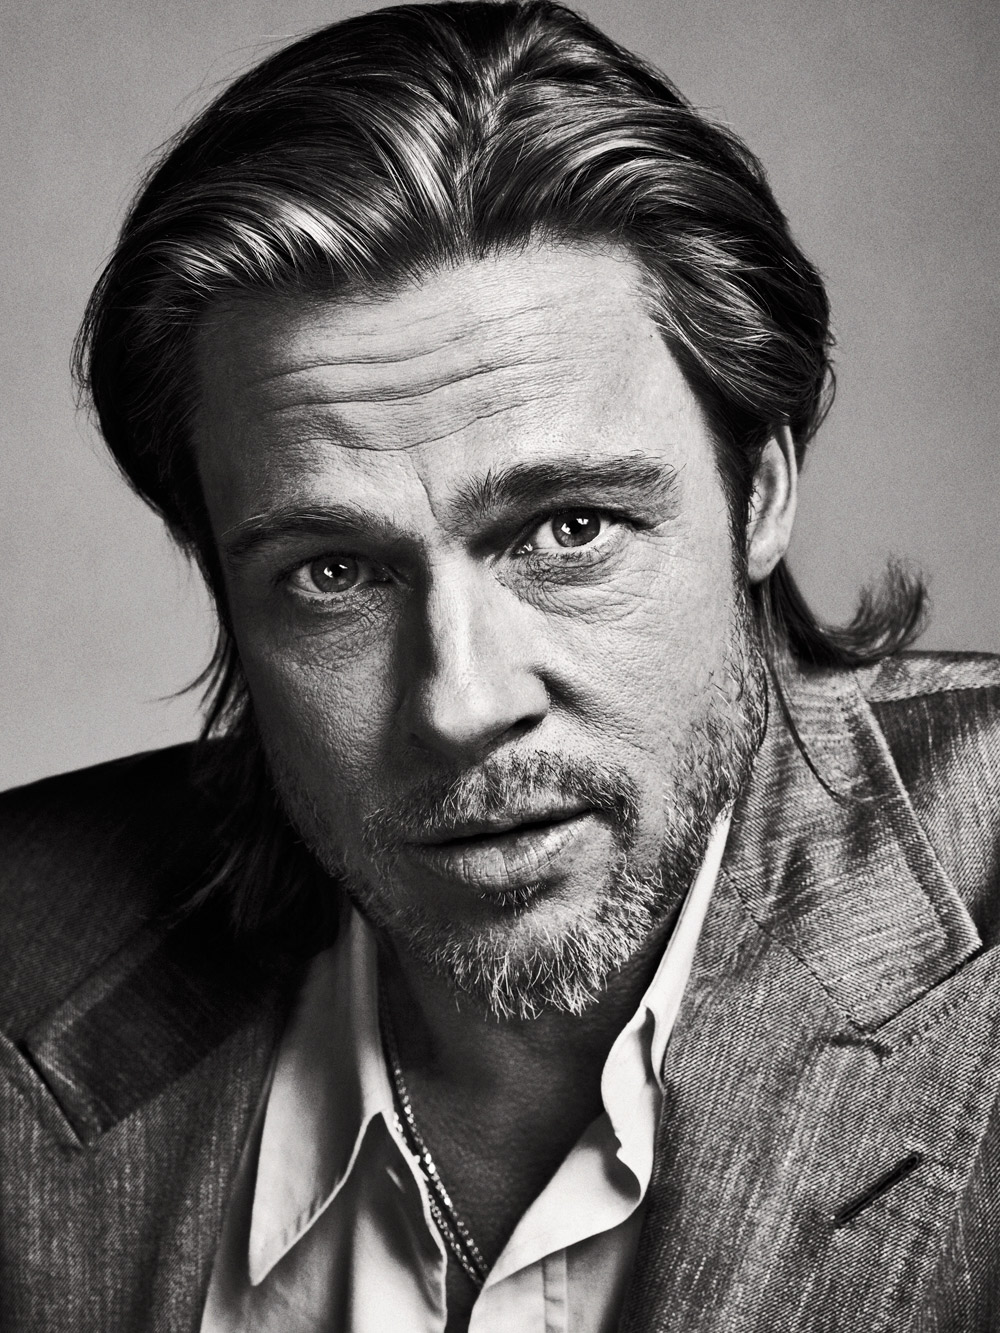 Brad Pitt2011 Performances: Moneyball, Happy Feet Two, The Tree of LifeNominated: Best Actor for Moneyball